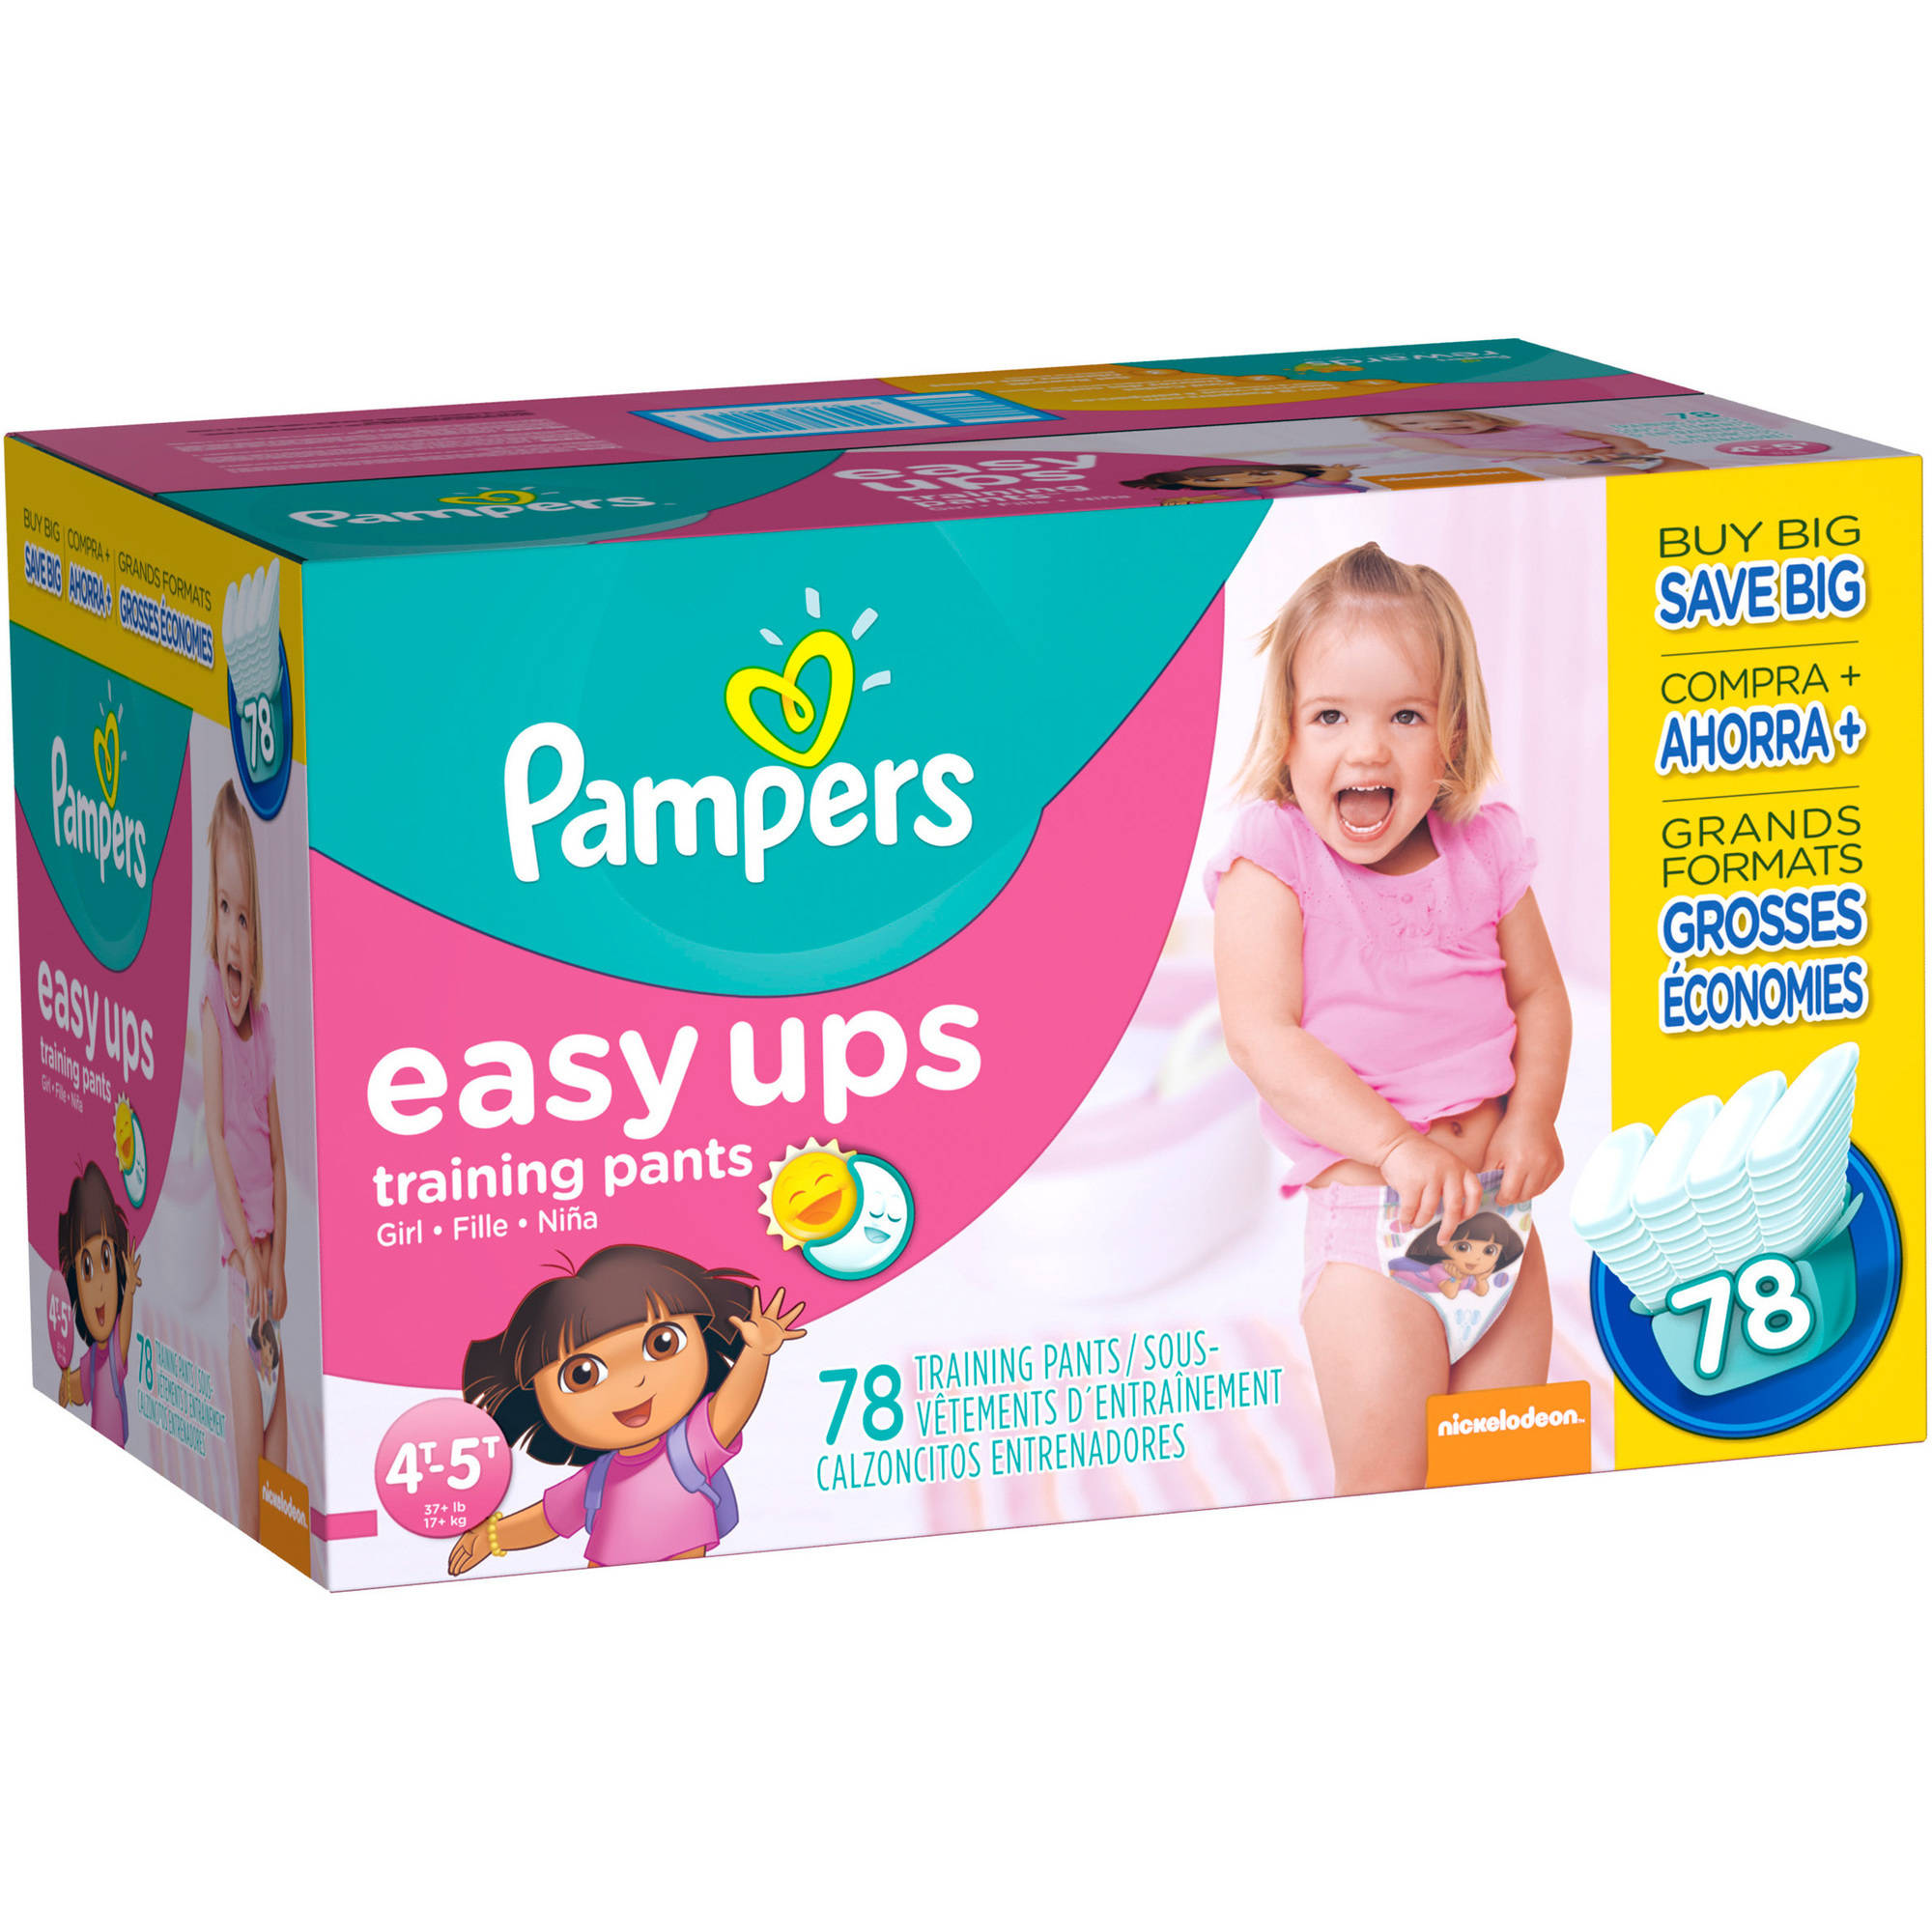 Pampers easy ups girls training pants size 4t 5t 78 pants pampers easy ups girls training pants size 4t 5t 78 pants walmart nvjuhfo Image collections